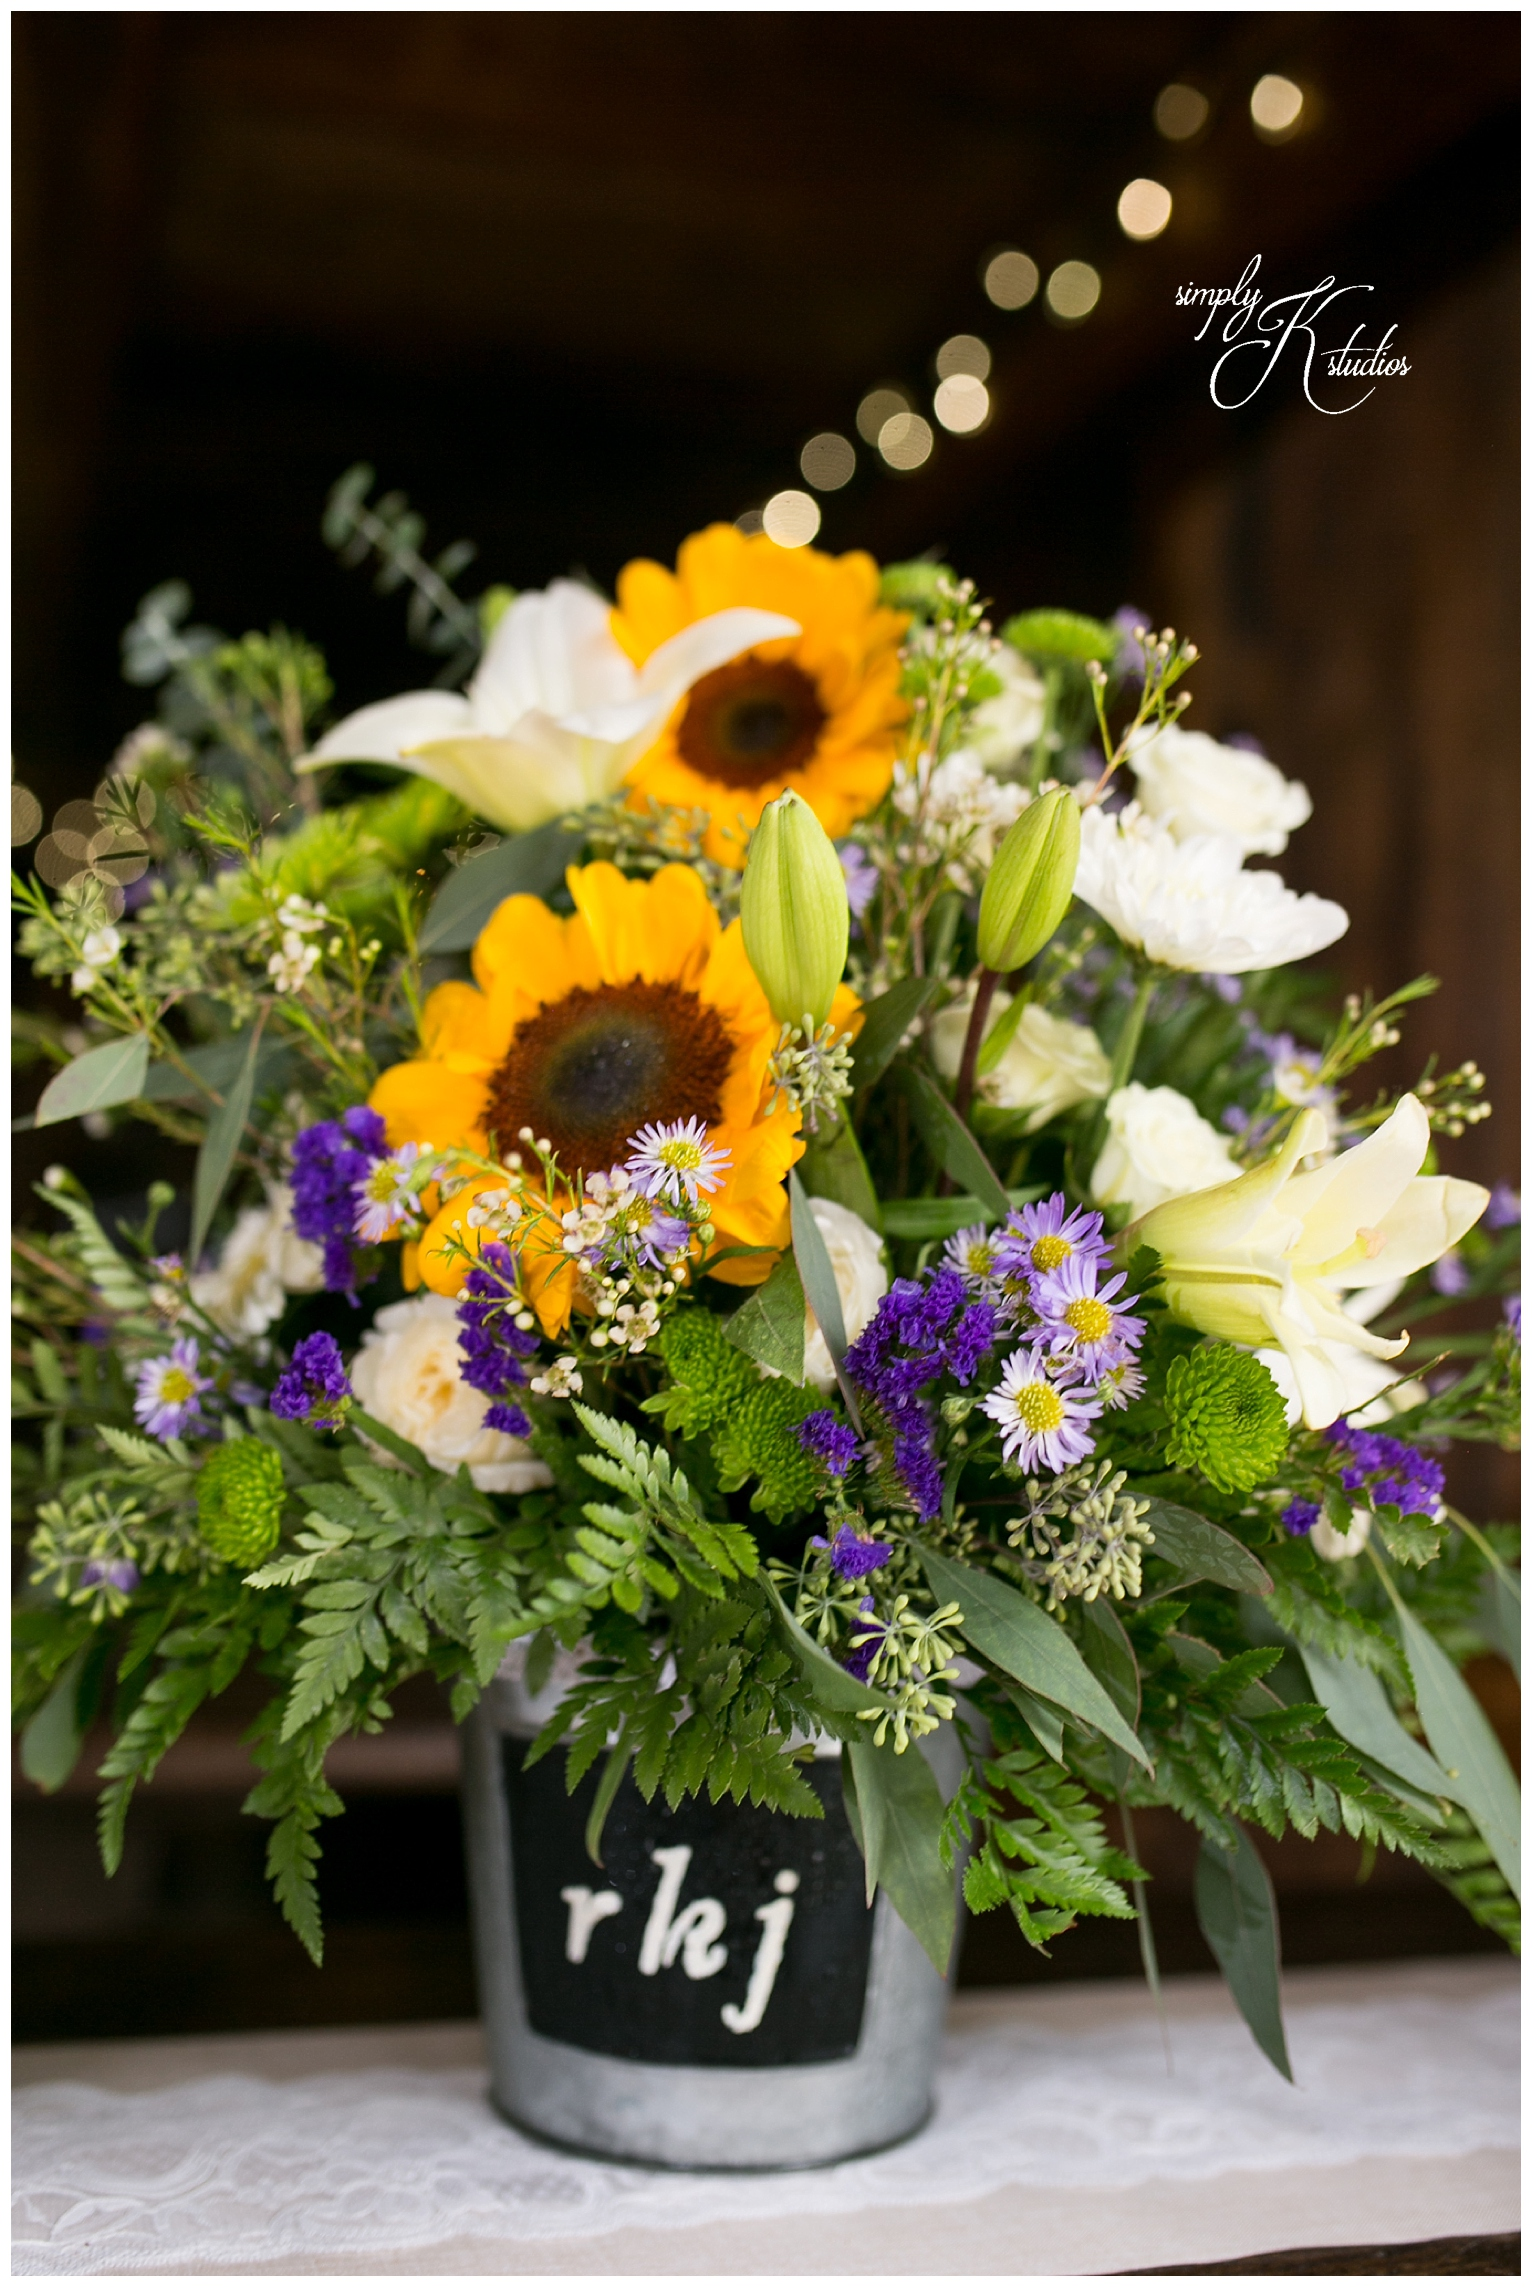 Wedding Details for a Rustic Wedding.jpg